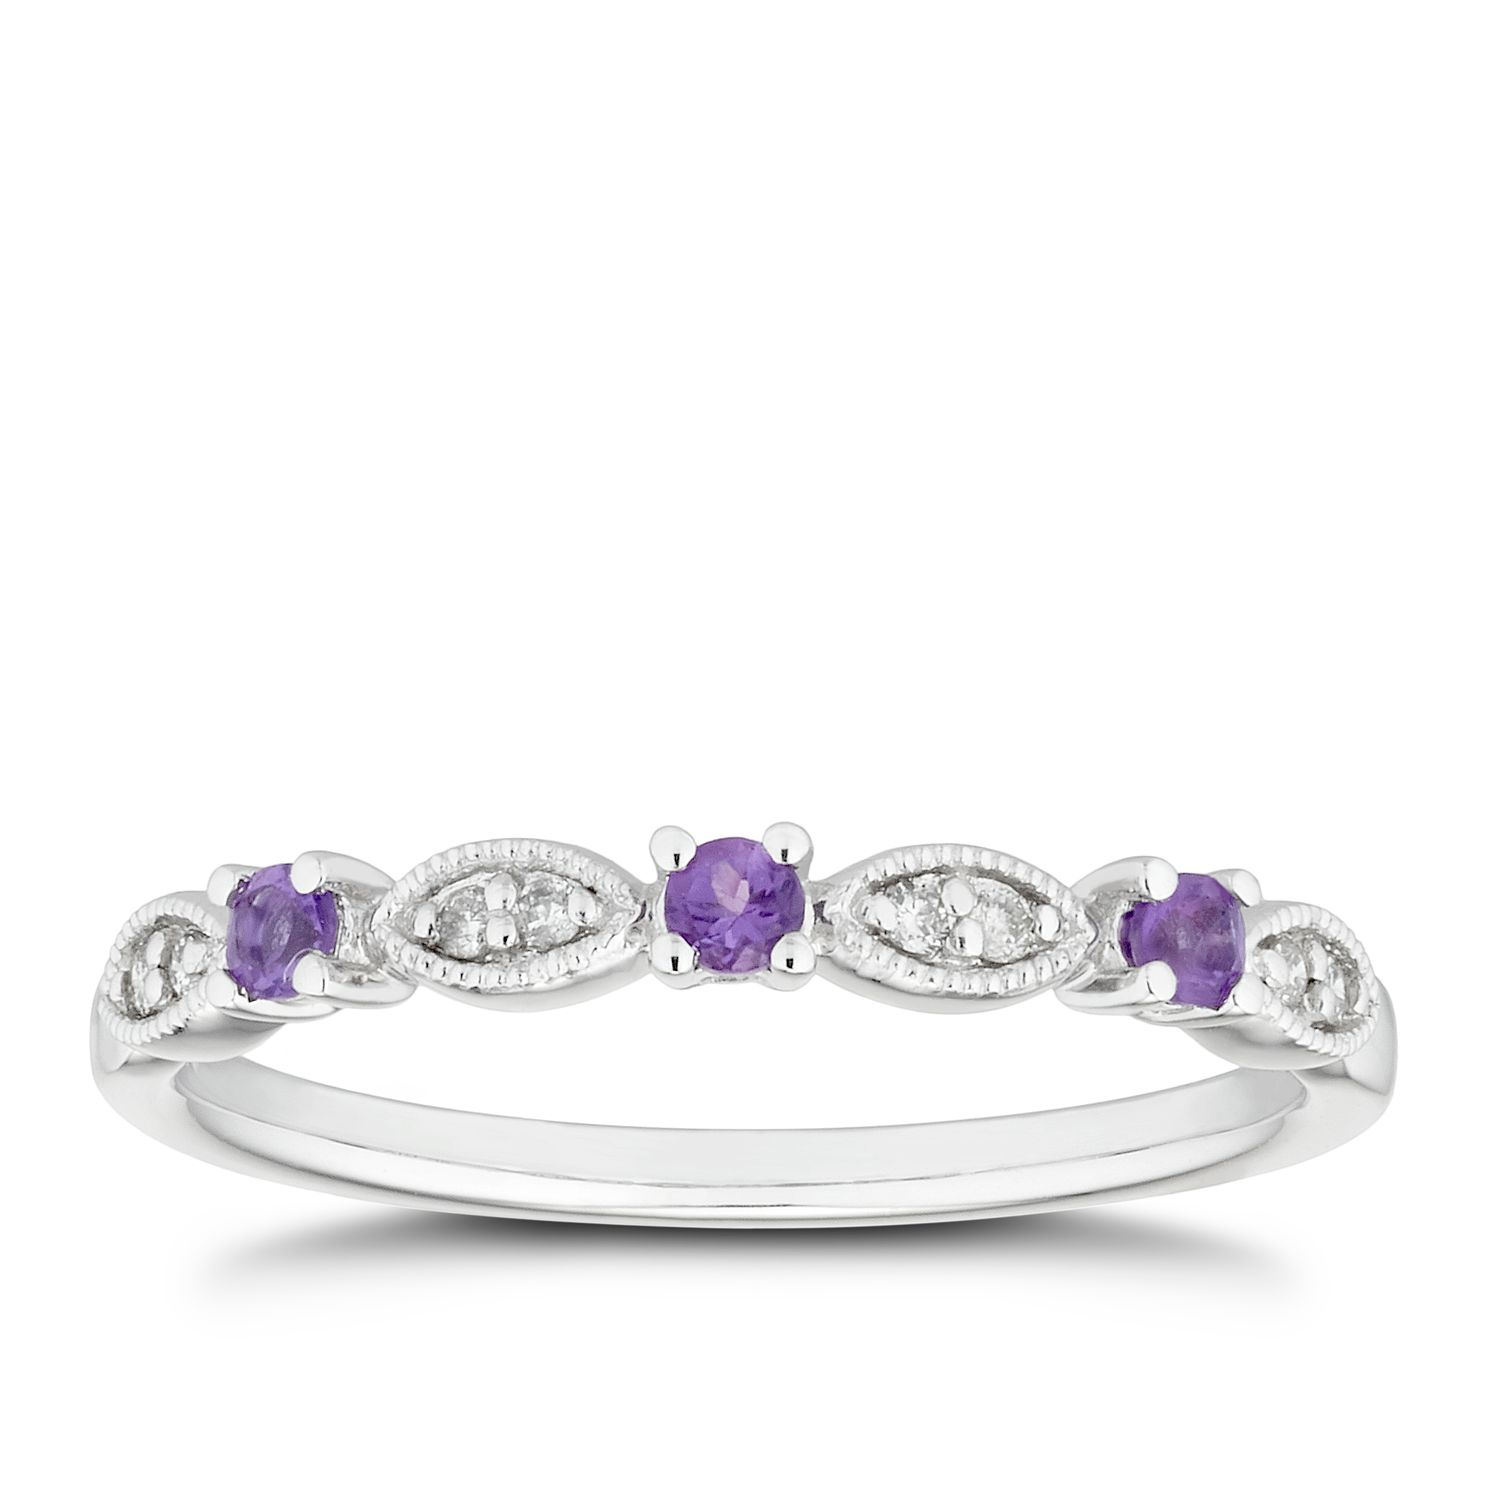 9ct White Gold Diamond & Amethyst Vintage Eternity Ring - Product number 5157900